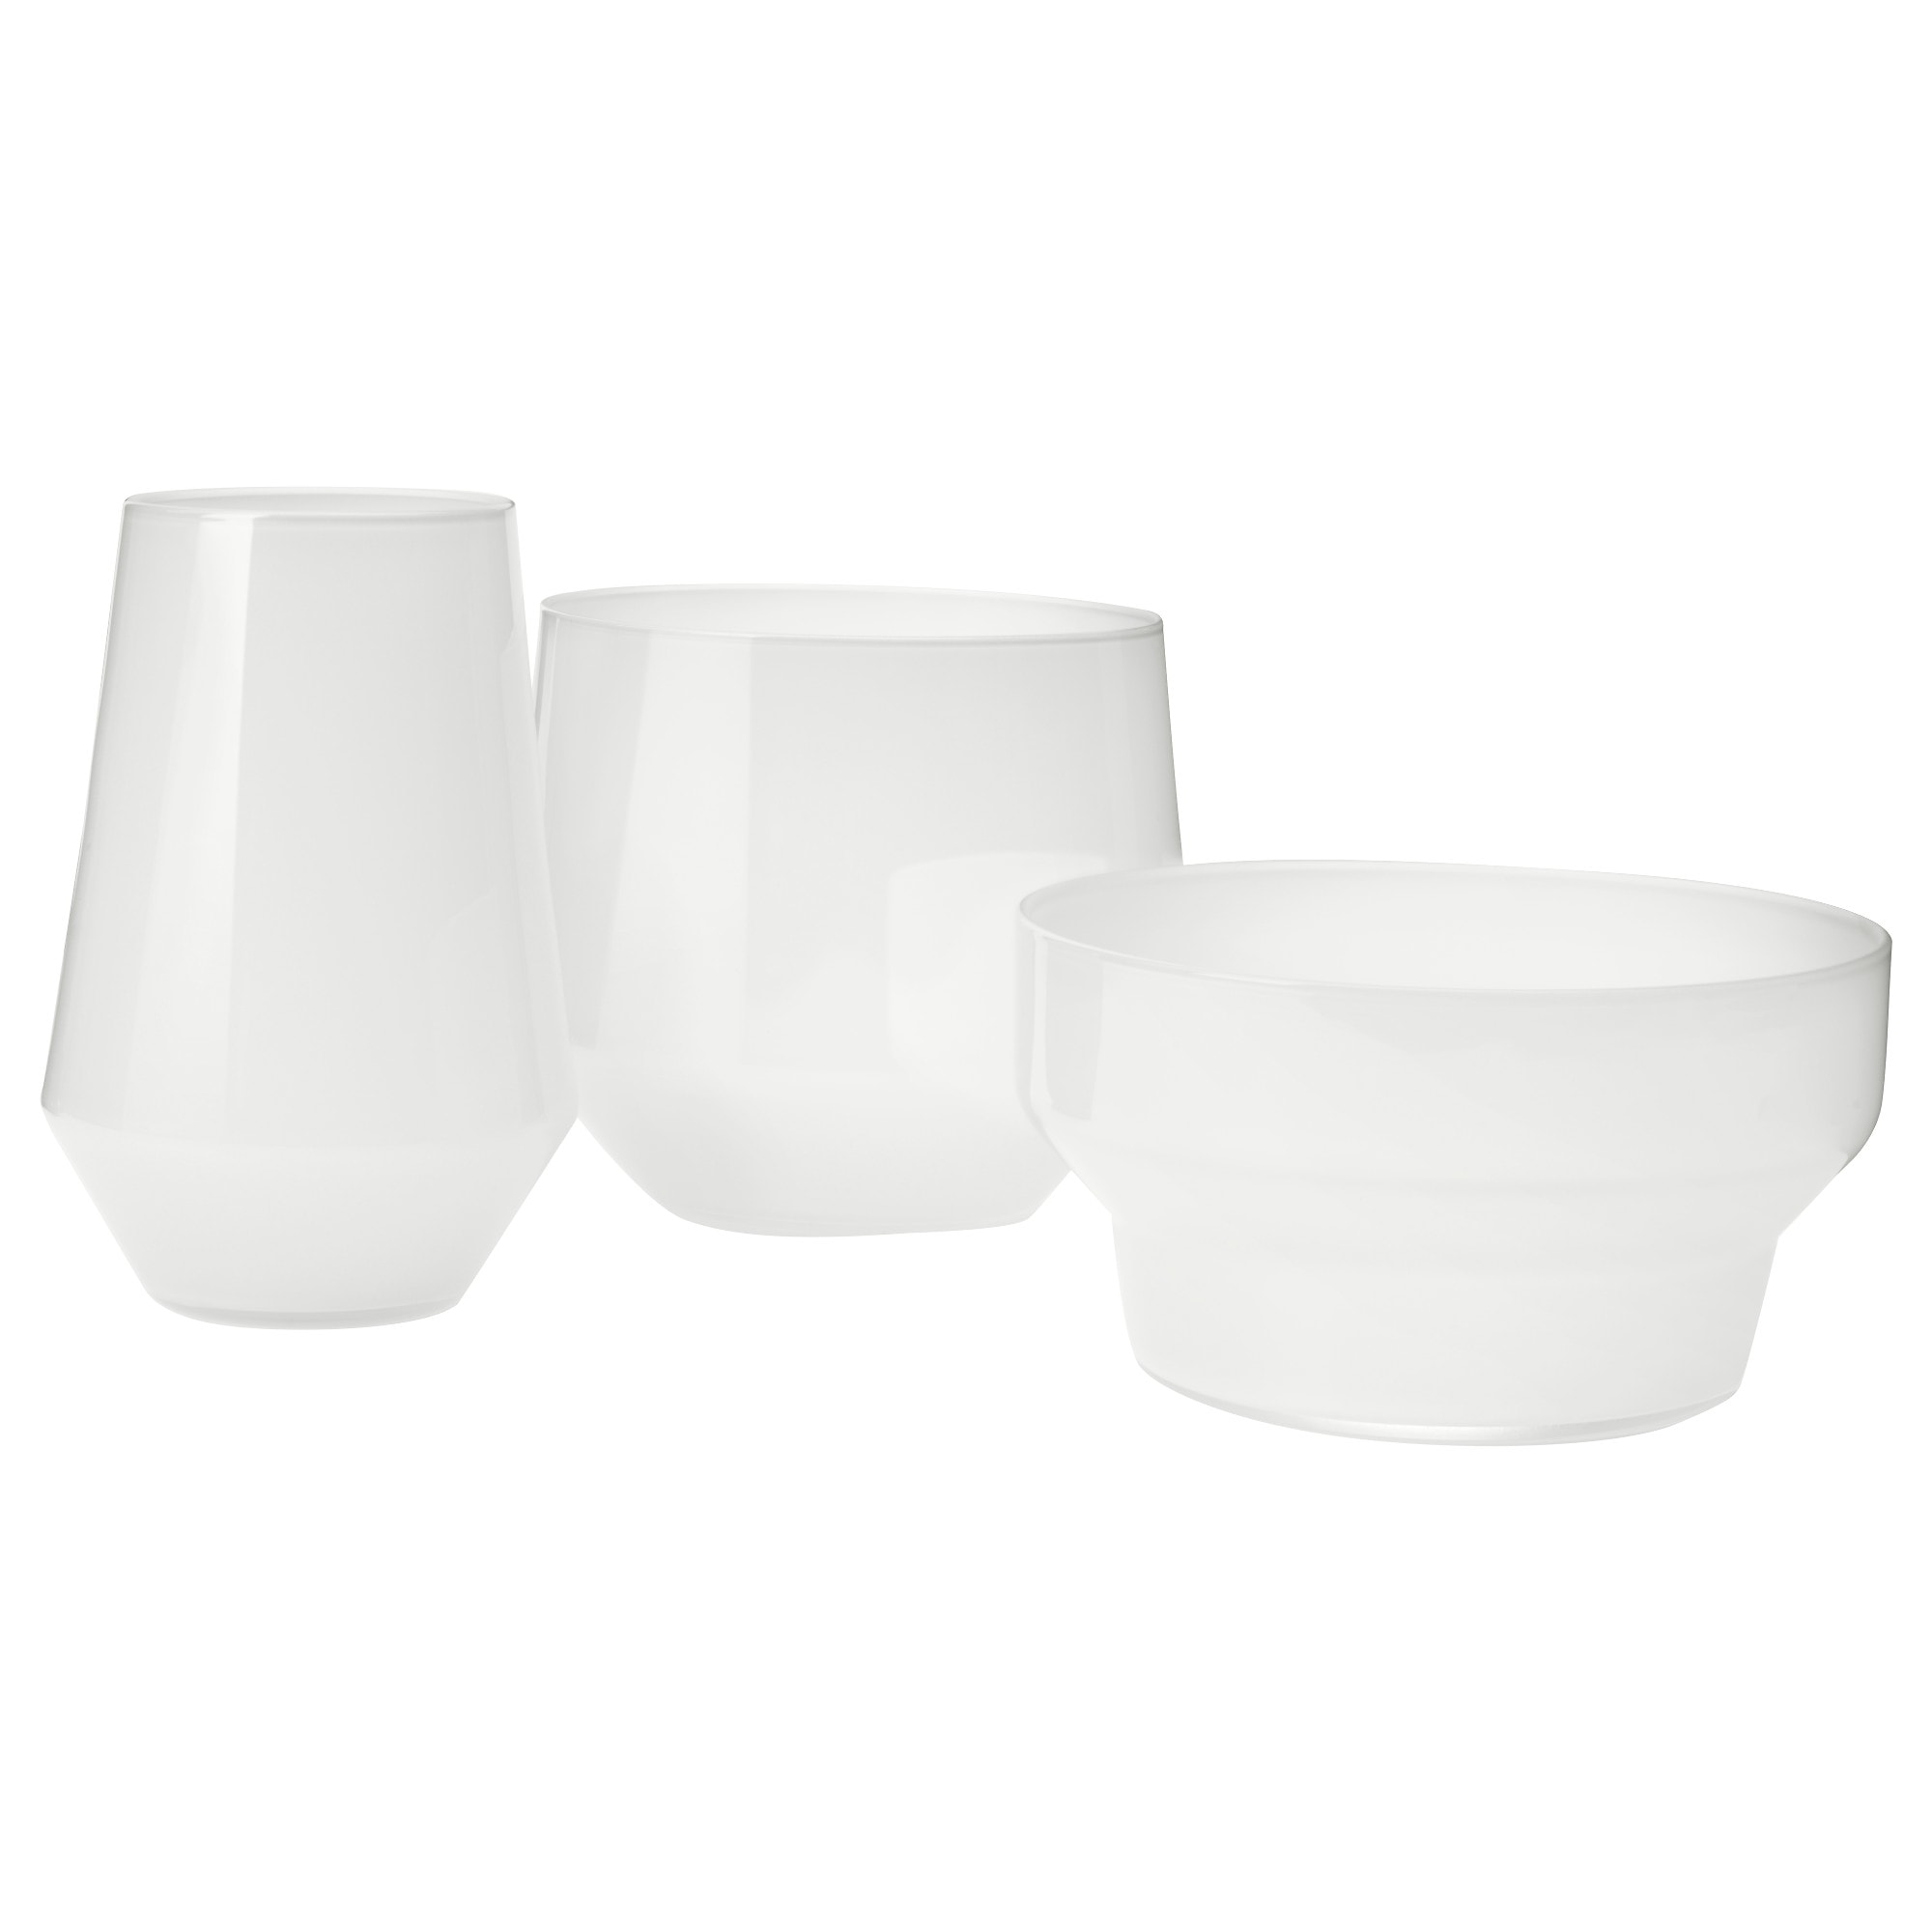 Vases decorative bowls ikea ikea ps 2017 vase set of 3 reviewsmspy